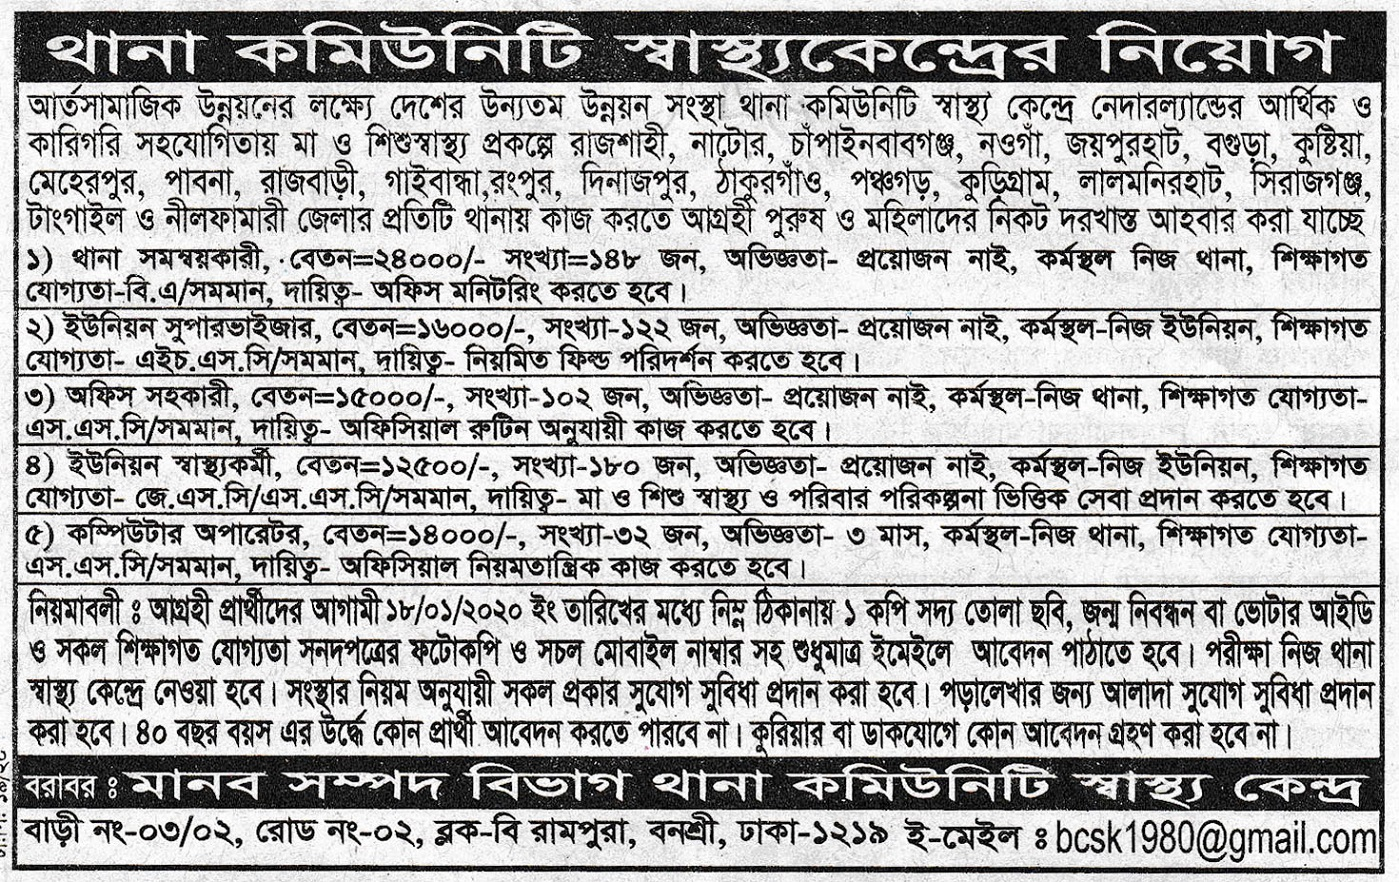 Bangladesh-Community-Health-Center-Job-Circular-2020